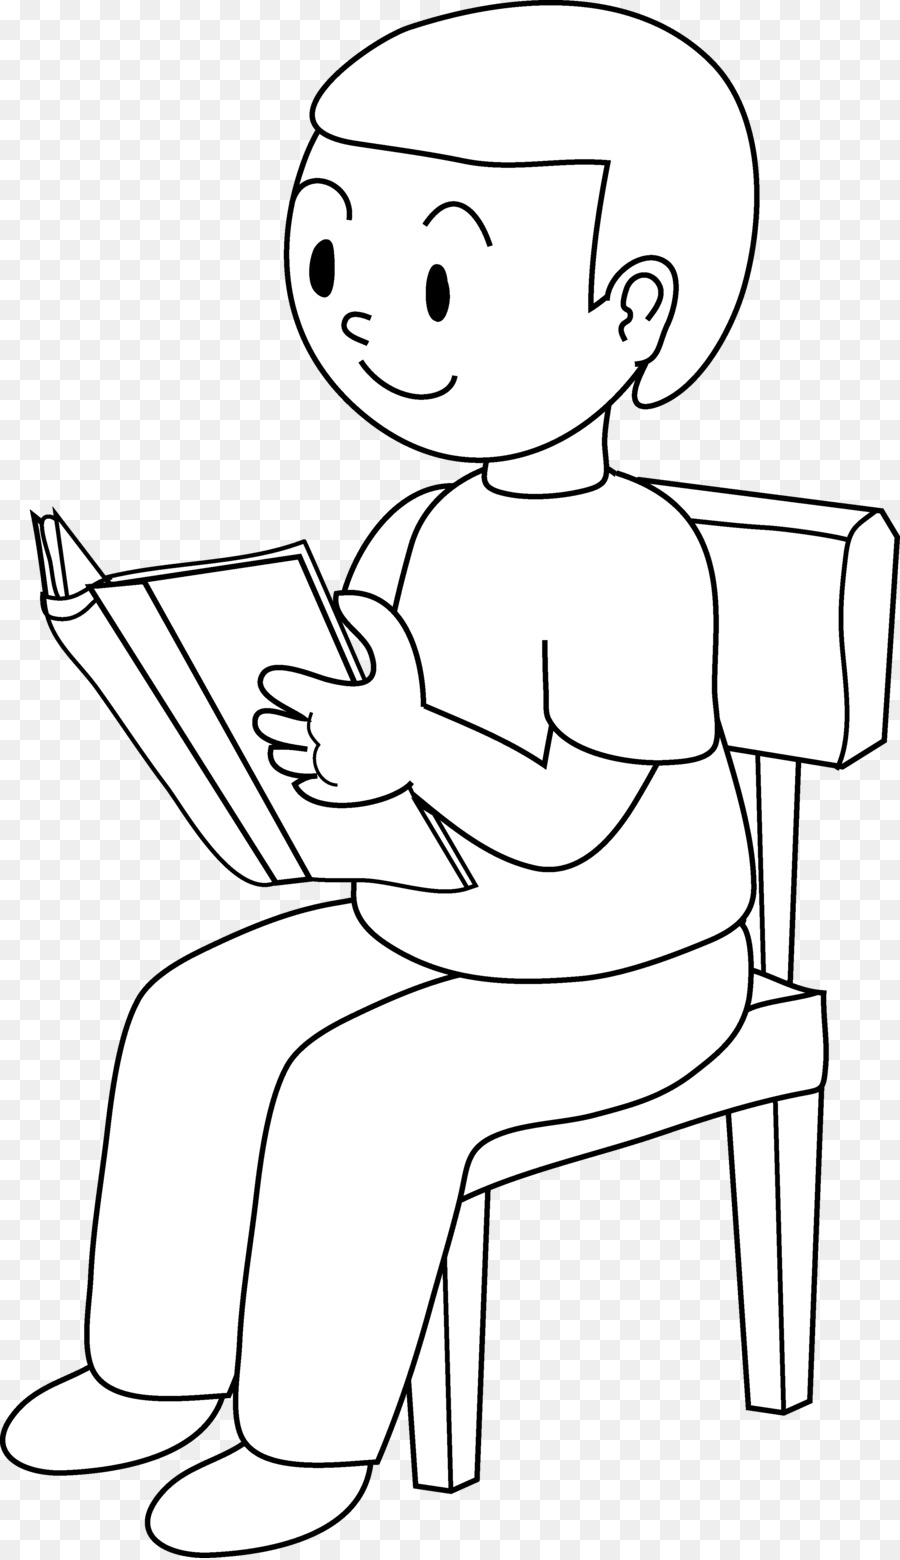 Clipart chair boy. Sitting black and white